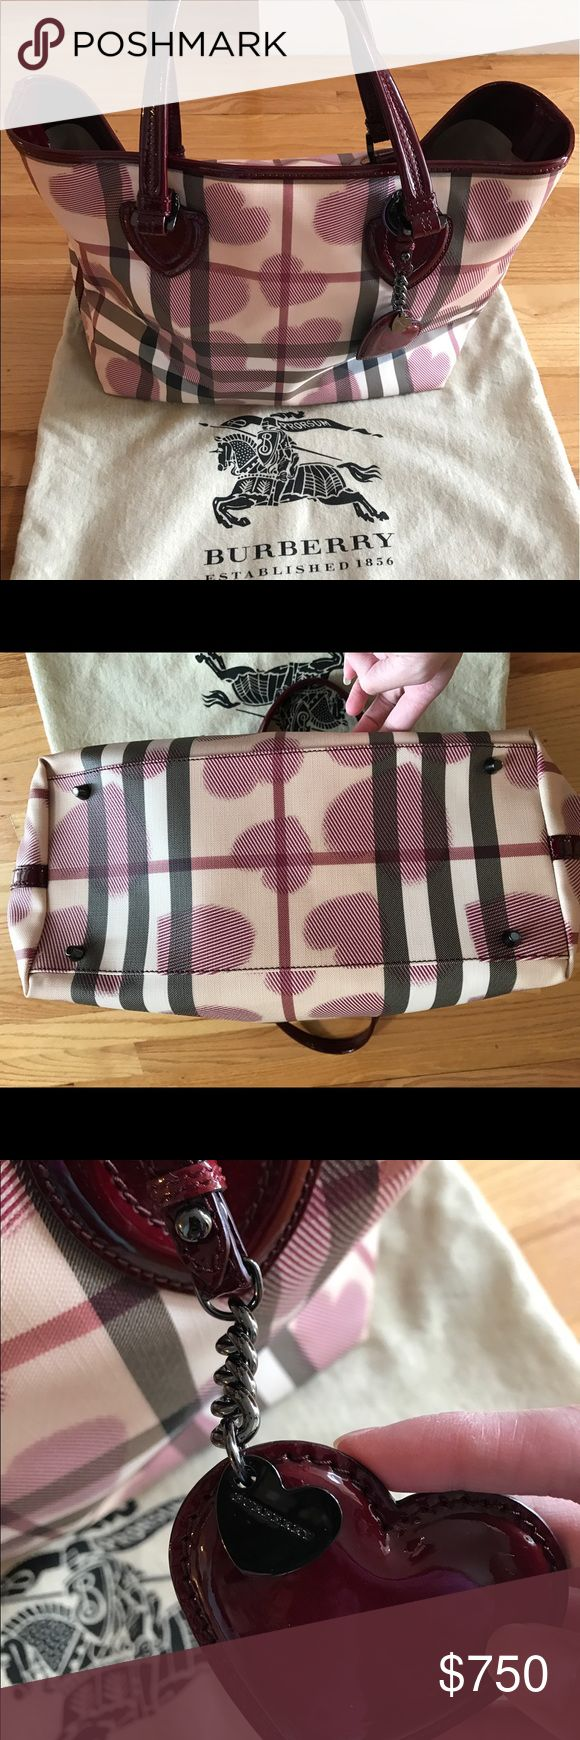 Authentic Burberry Heart Nova Check shoulder tote Authentic Burberry limited edition heart pattern nova check PVC patent leather tote bag. I only used this bag once and is too big on me. Excellent condition. There's a slight dent/marking on the right hand side (last pic) but is not noticeable because of the glossy material. Comes with Burberry heart shaped charm with logo attached to the bag. Include dust bag. Will also be including the burberry card with it. No trades please. Will only take…